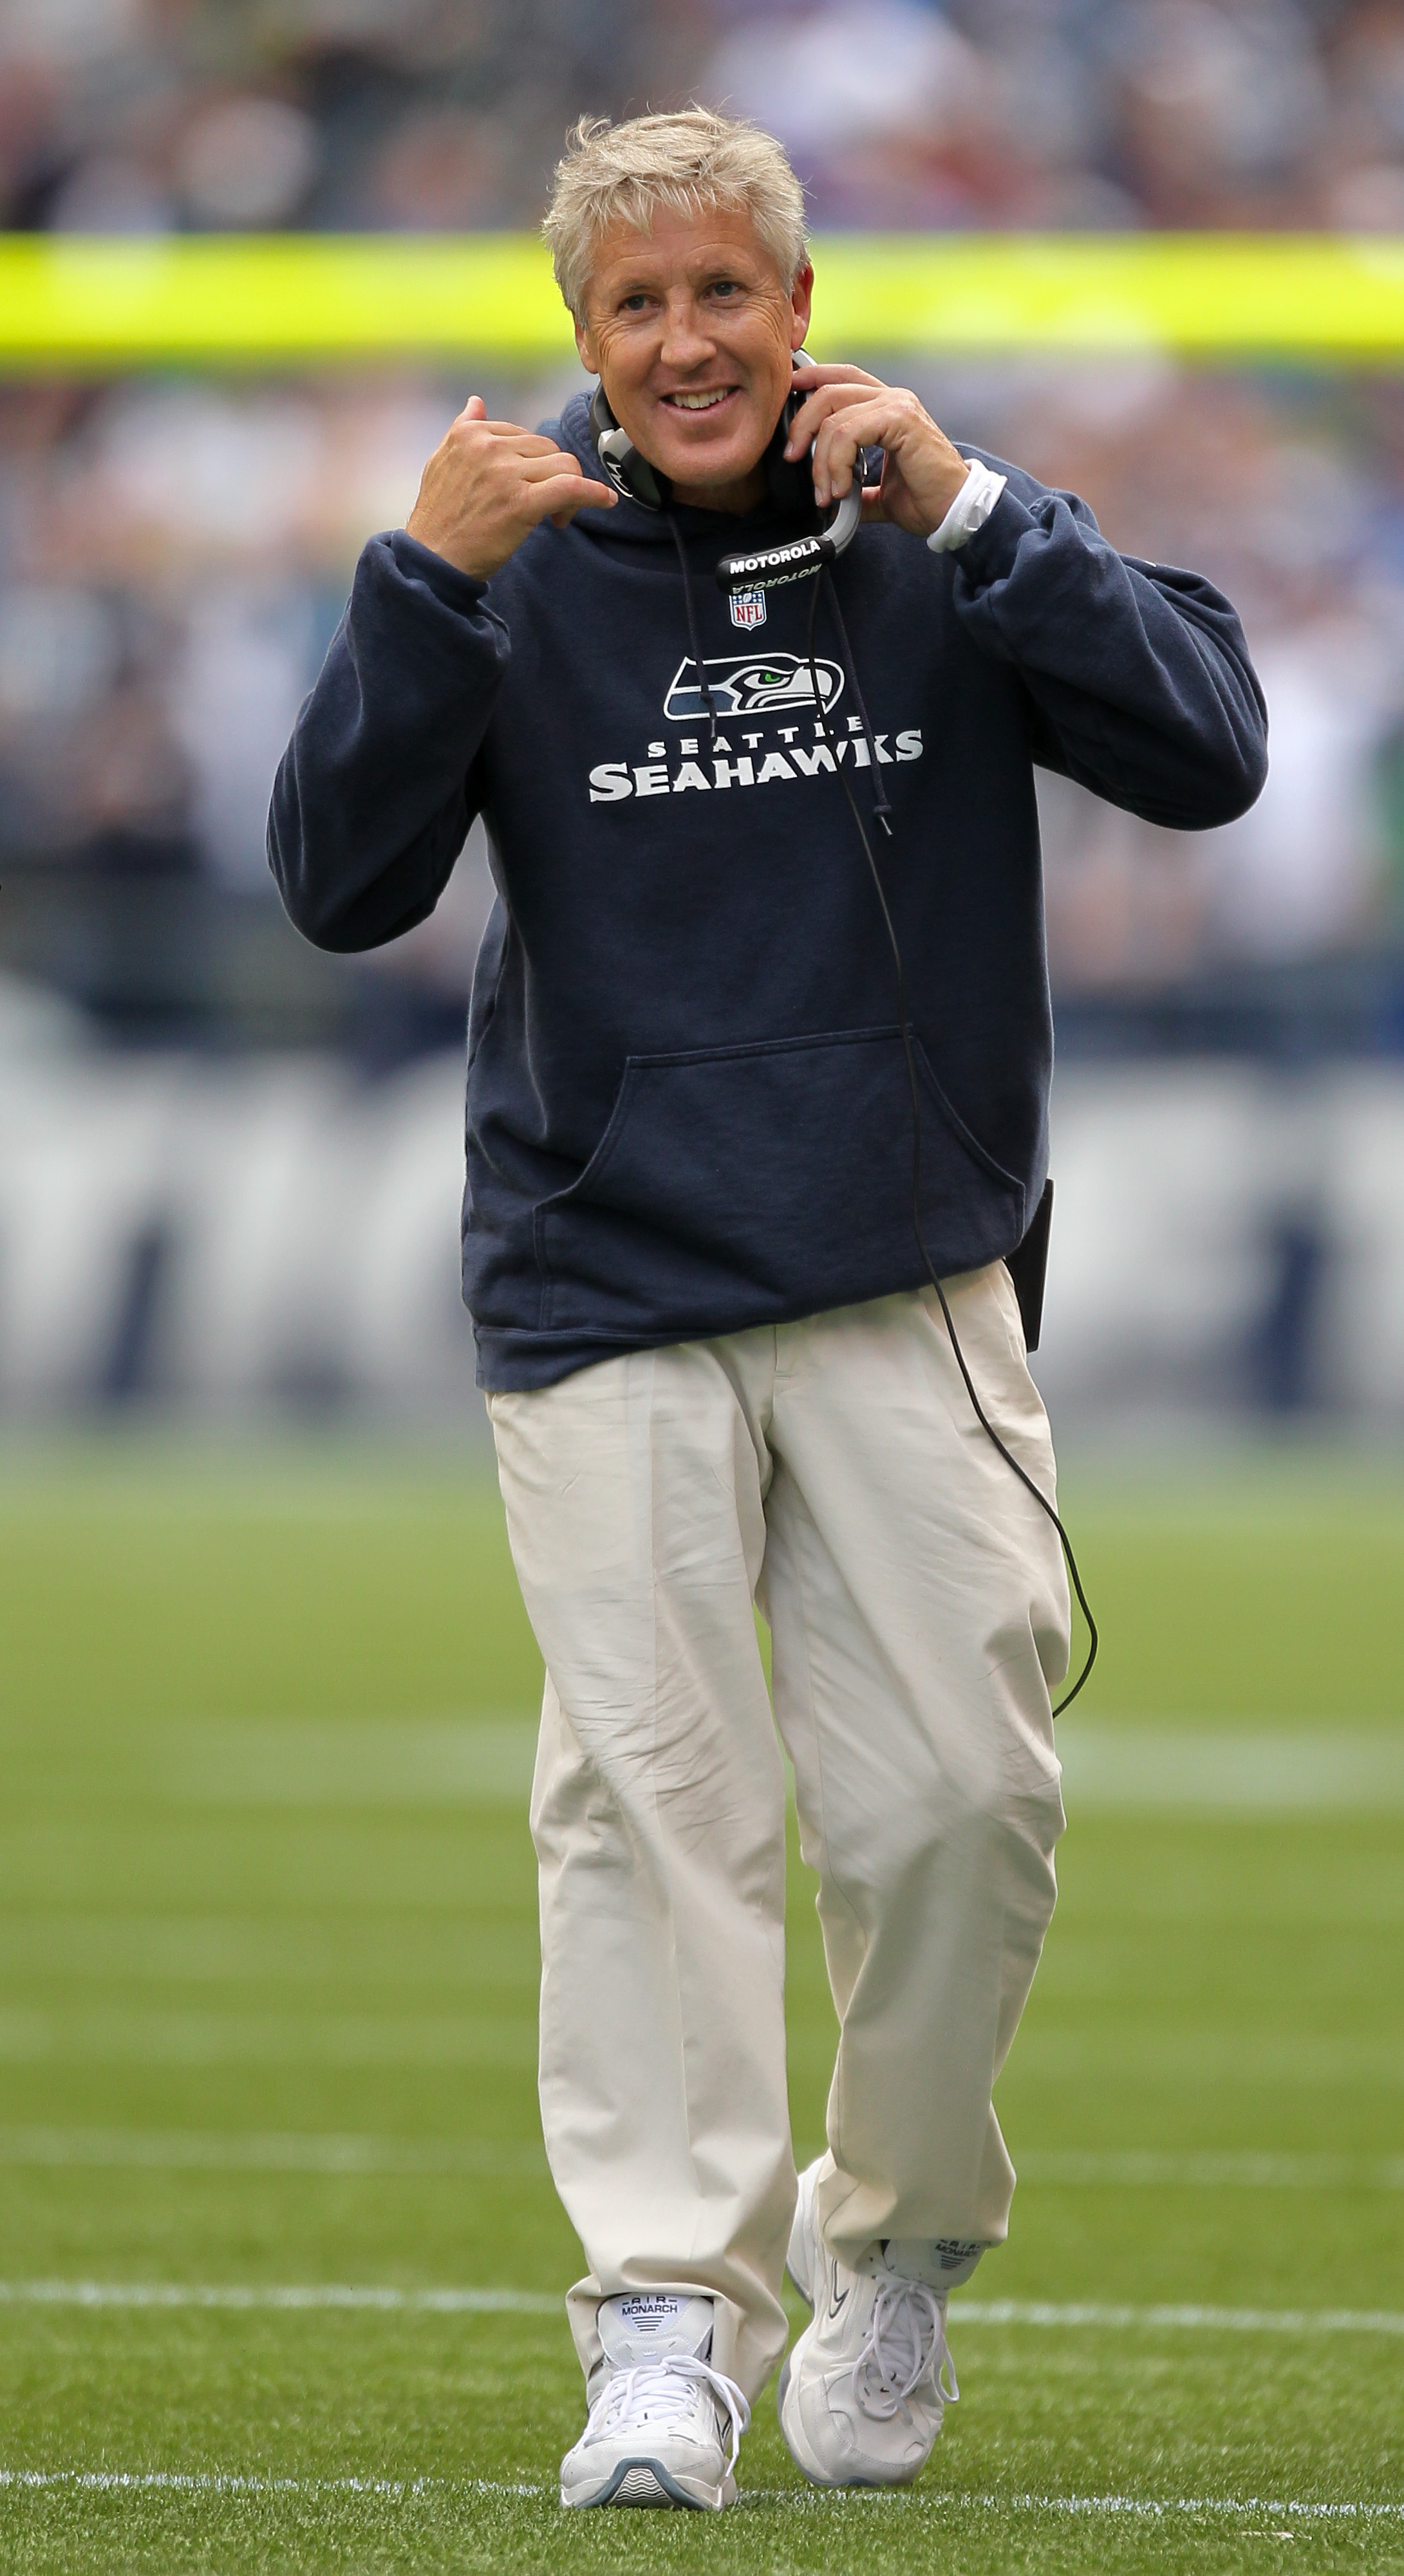 SEATTLE - SEPTEMBER 26:  Head coach Pete Carroll of the Seattle Seahawks looks on during the game against the San Diego Chargers at Qwest Field on September 26, 2010 in Seattle, Washington. (Photo by Otto Greule Jr/Getty Images)